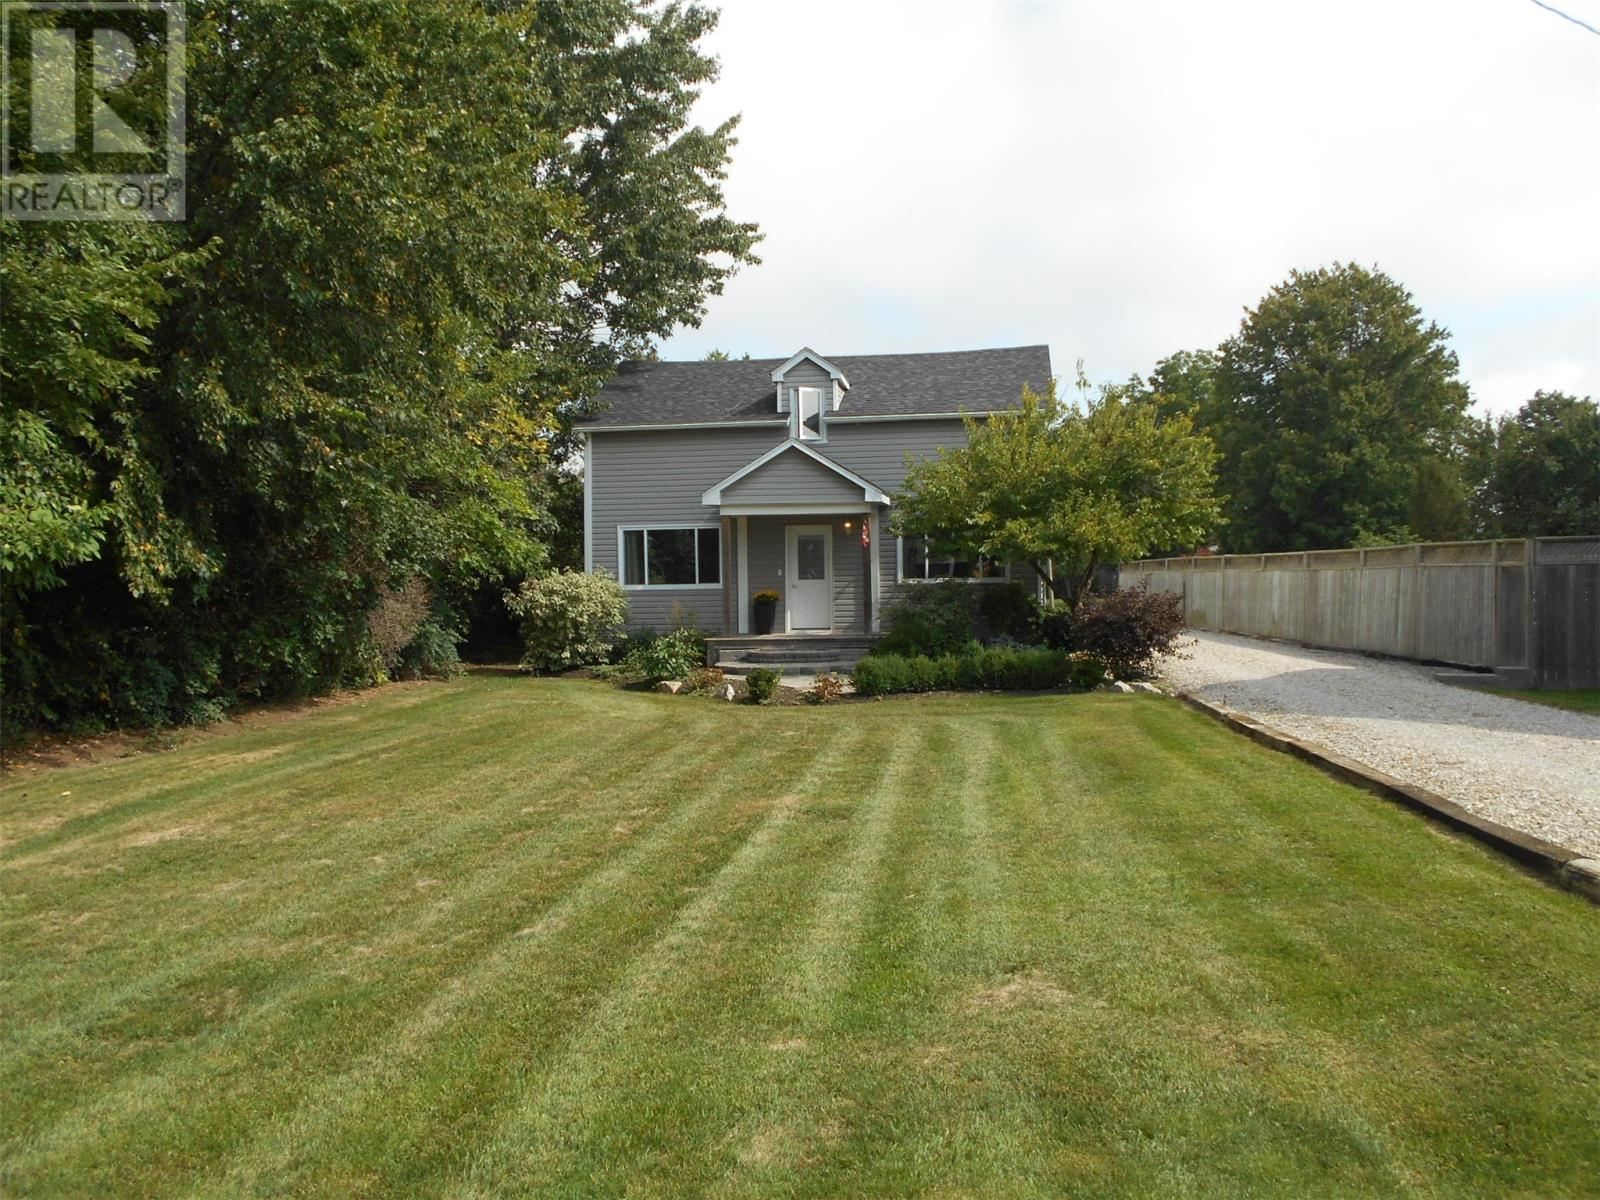 Removed: 21033 Charing Cross Road, Chatham Kent, ON - Removed on 2018-10-09 10:54:28